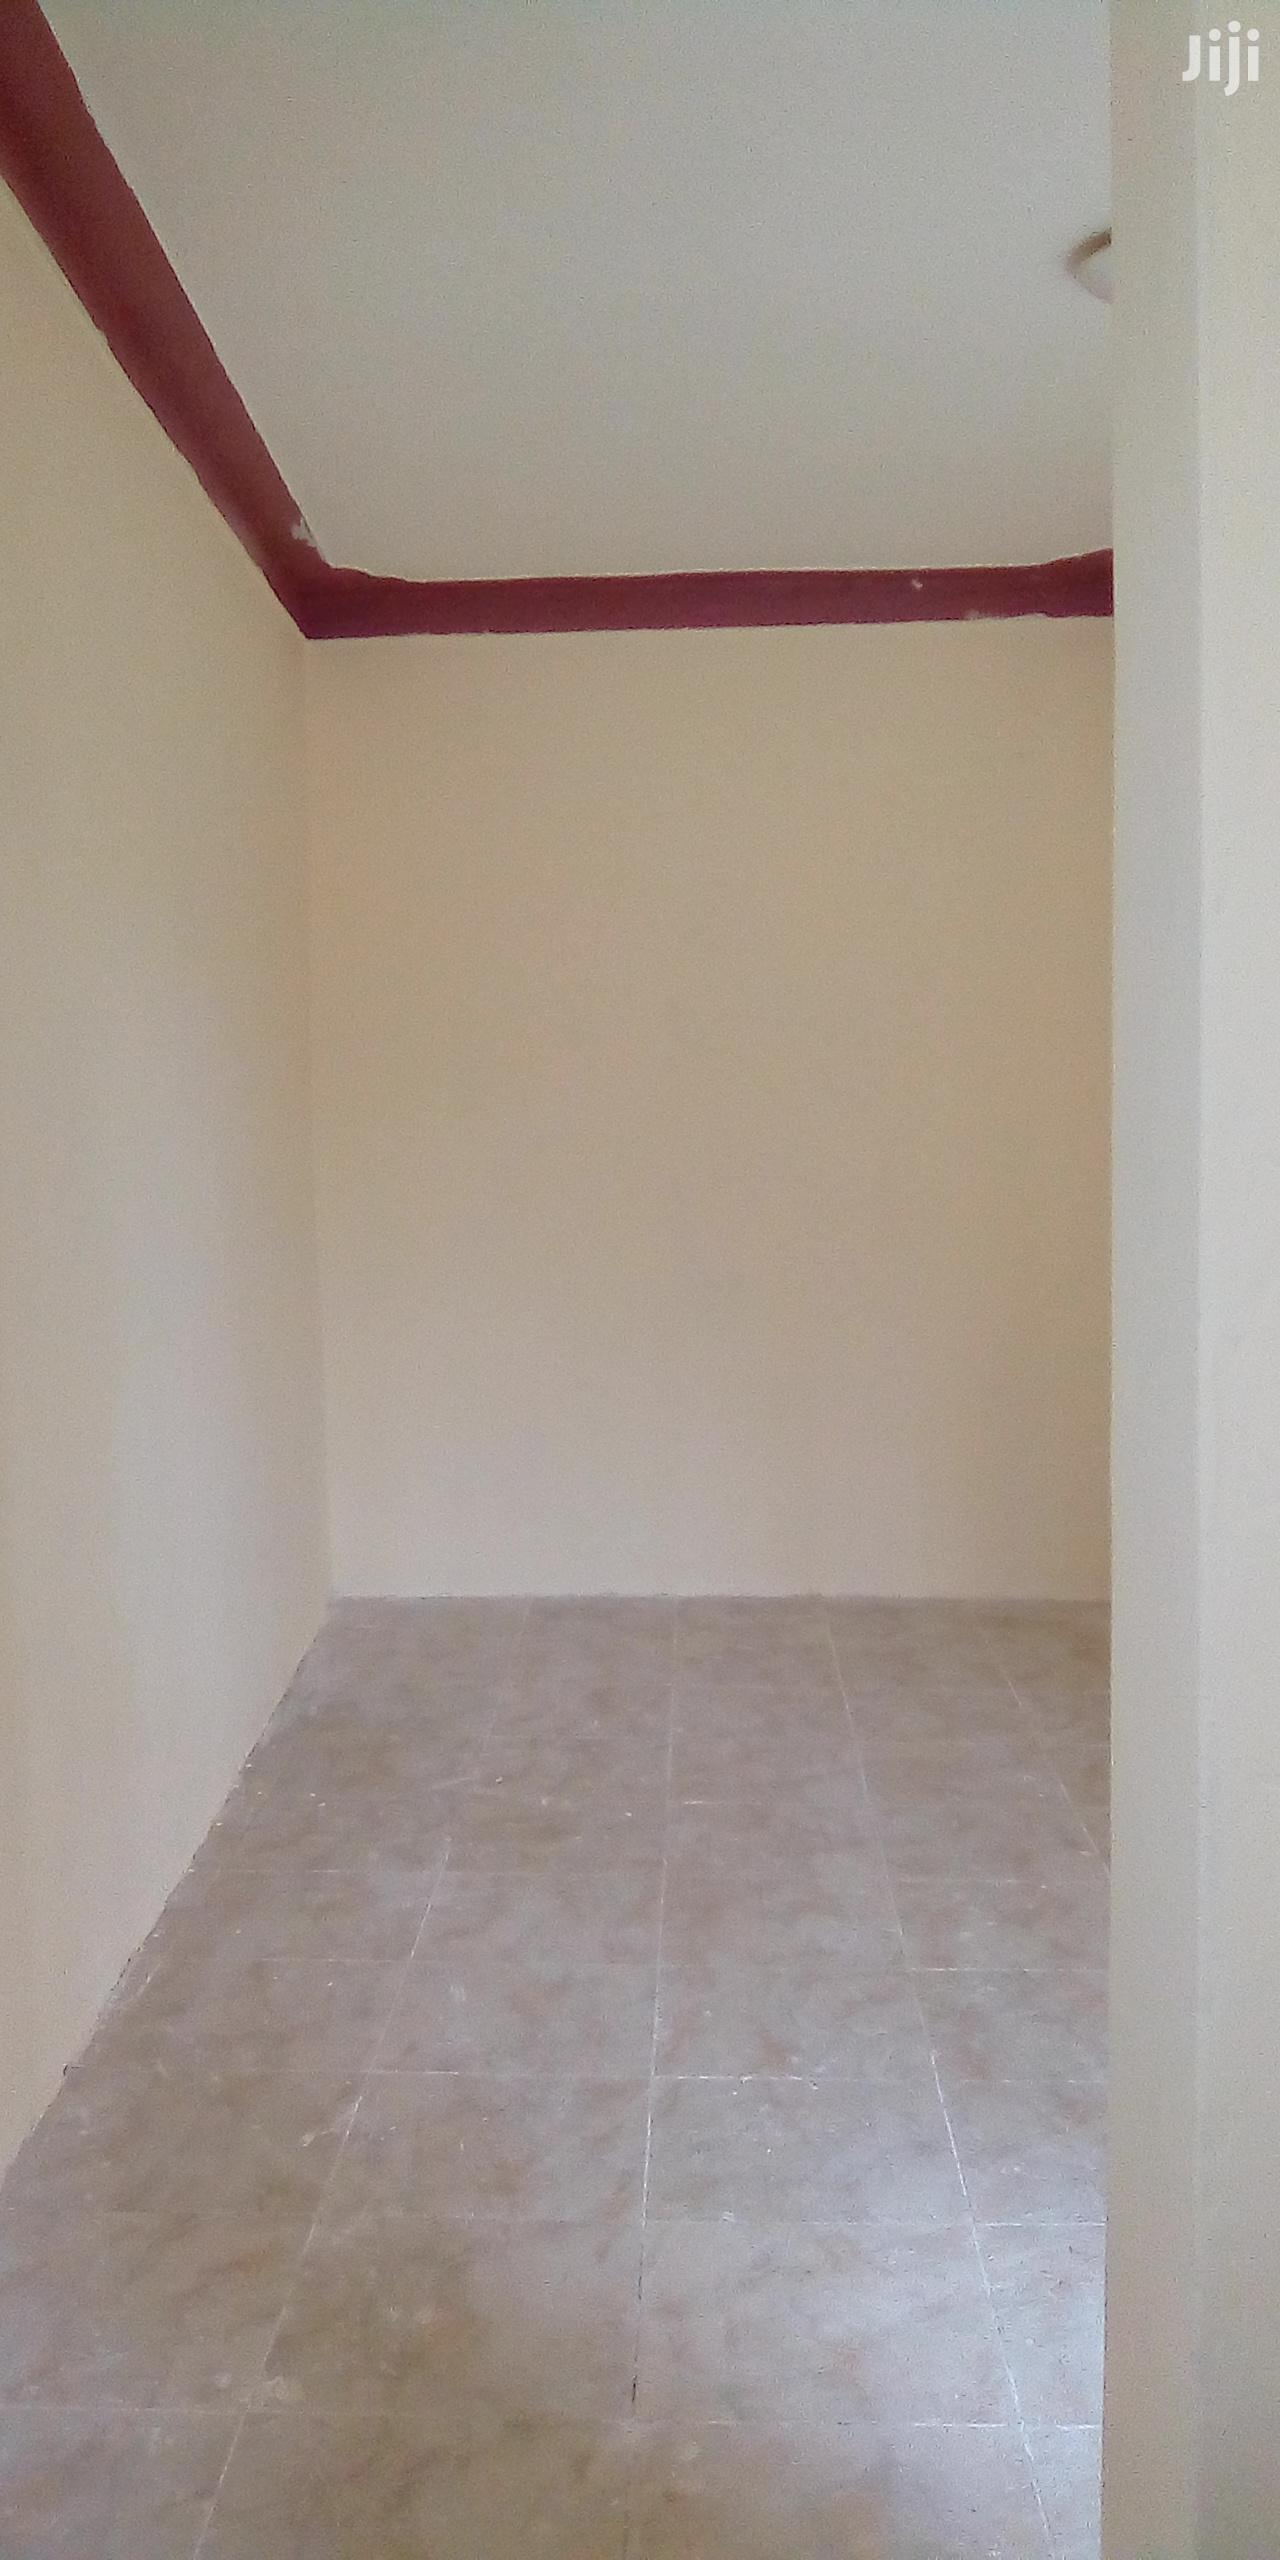 Archive: Singleroom House For Rent In Kyaliwajjala Self Contained